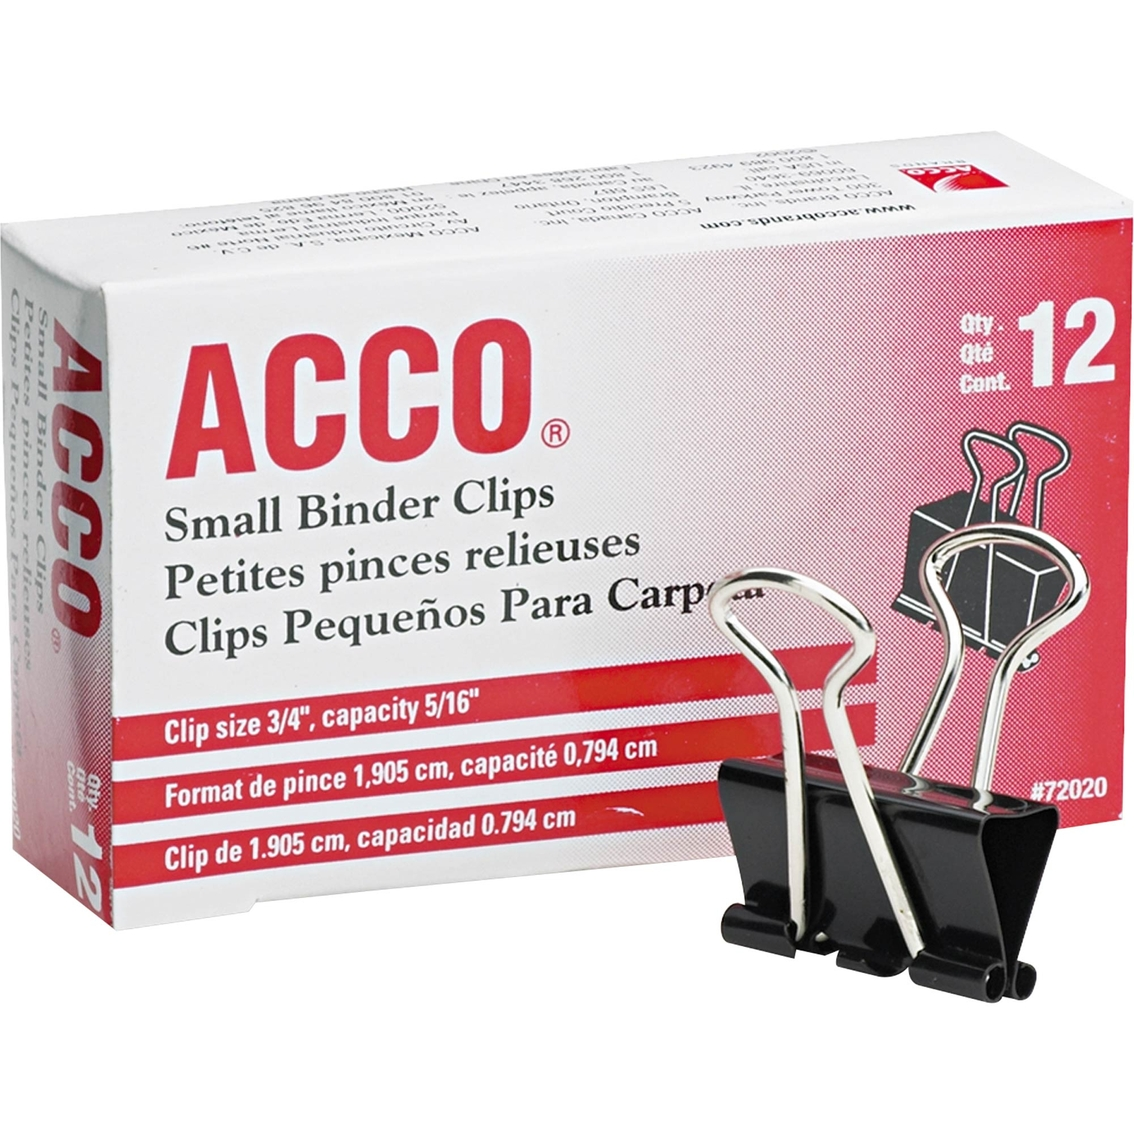 Acco Small Steel Wire Binder Clips 12 Pk.   Tape, Adhesives ...